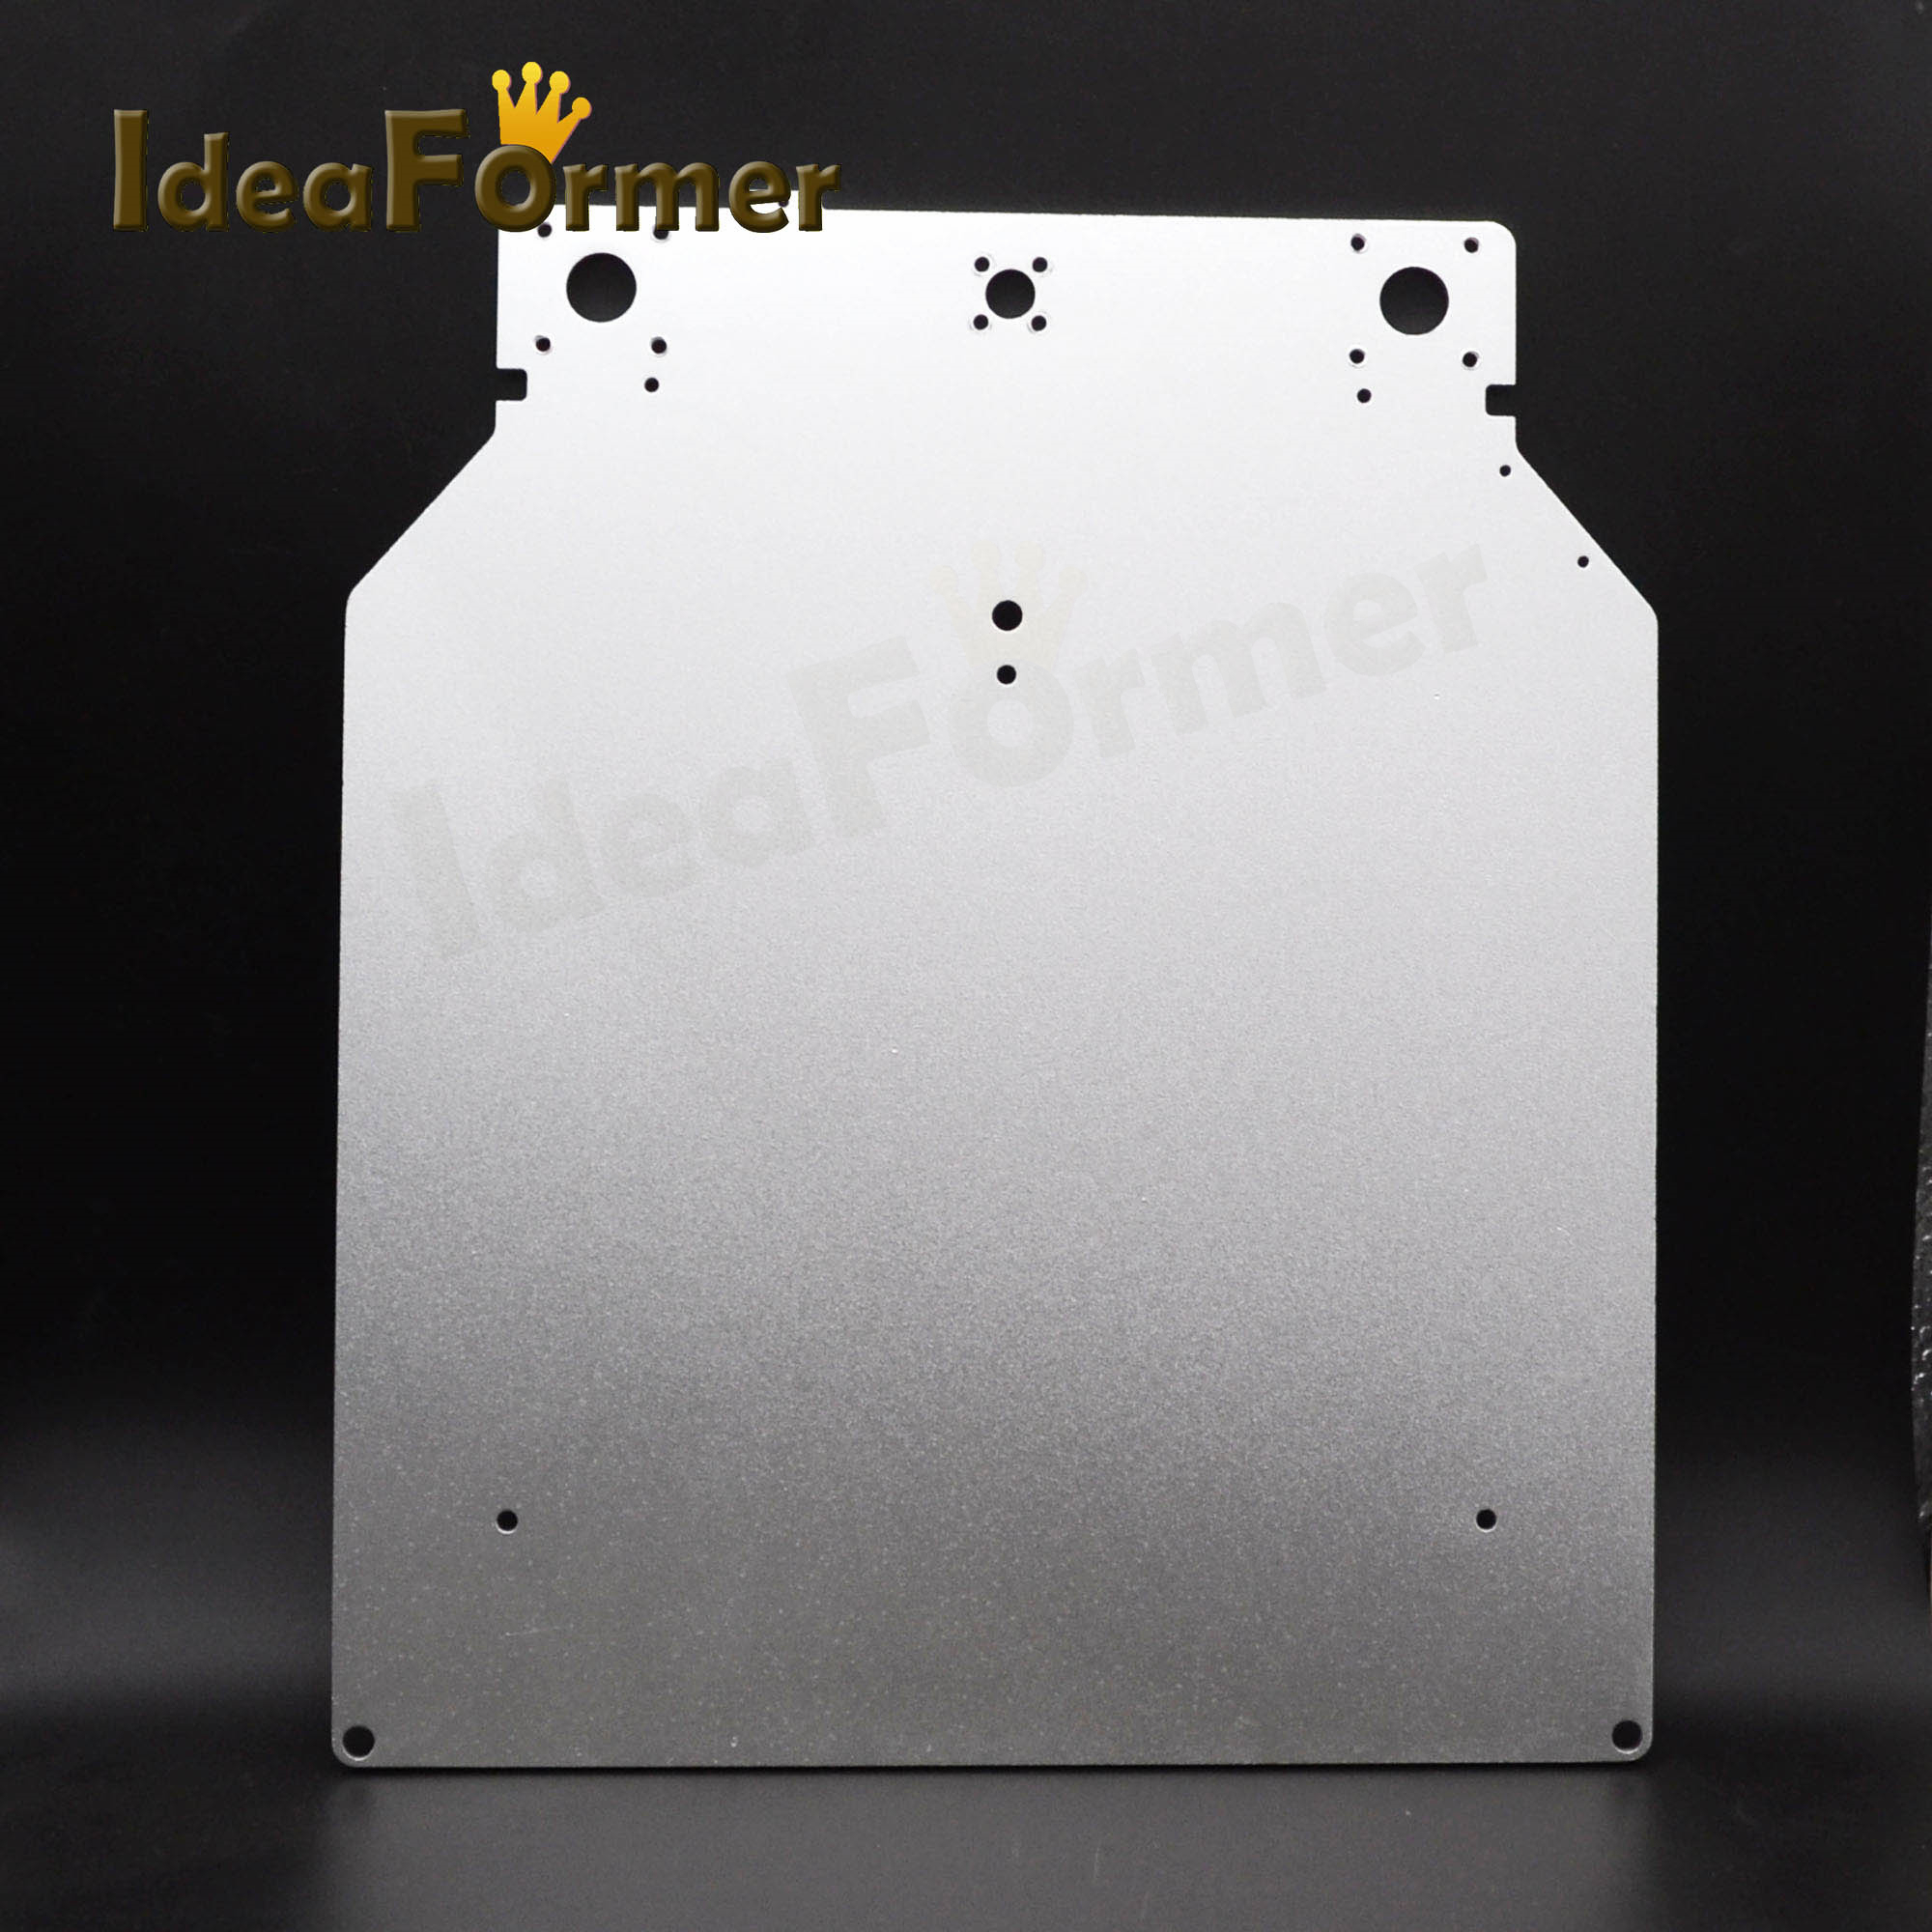 все цены на UM2 Z Table aluminum heat bed hot Base Plate platform support 3D printer parts онлайн